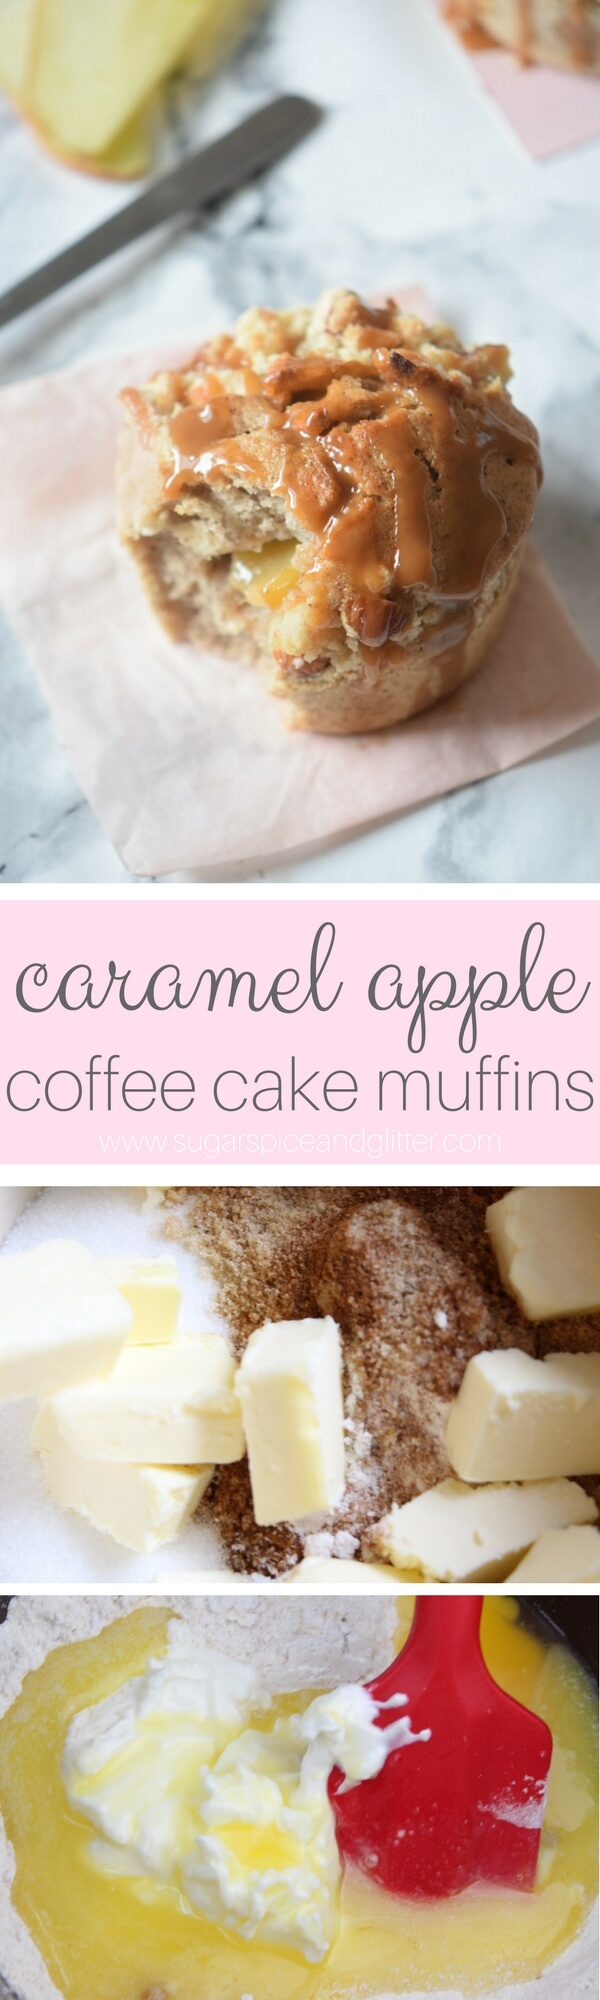 Apple Coffee Cake Muffins with a crumb topping, fresh apples and salted caramel sauce - this is one decadent fall dessert!